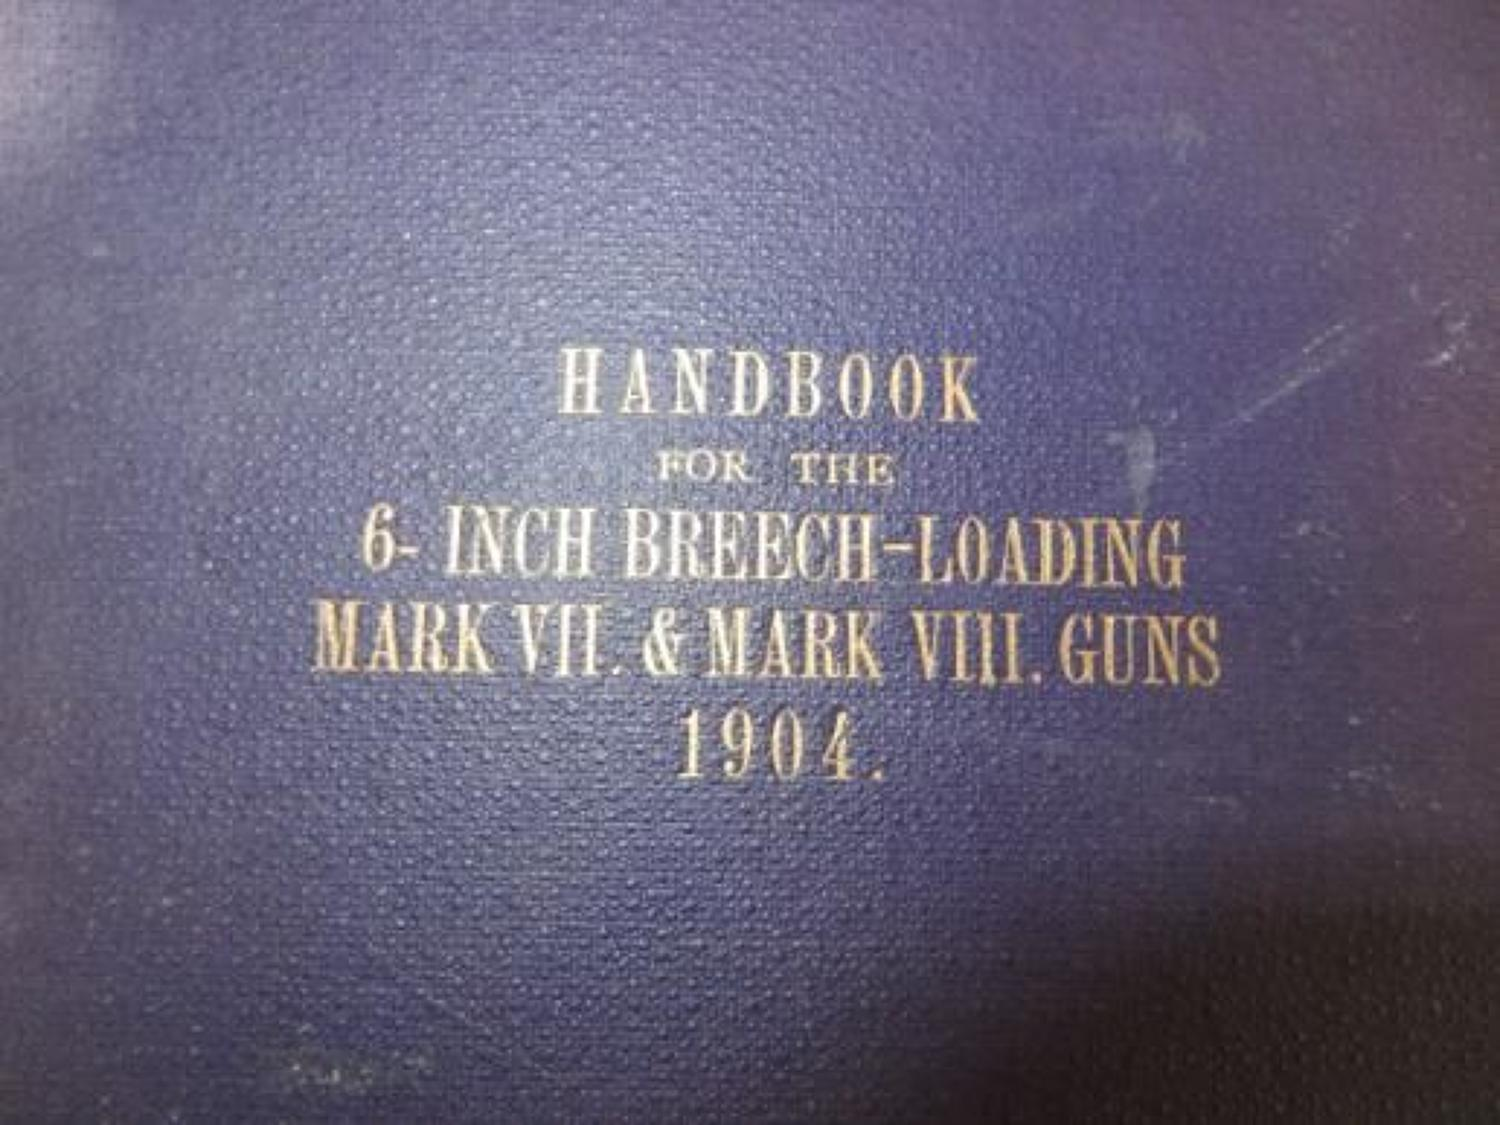 Handbook for the 6 Inch Breech Loading Gun 1904